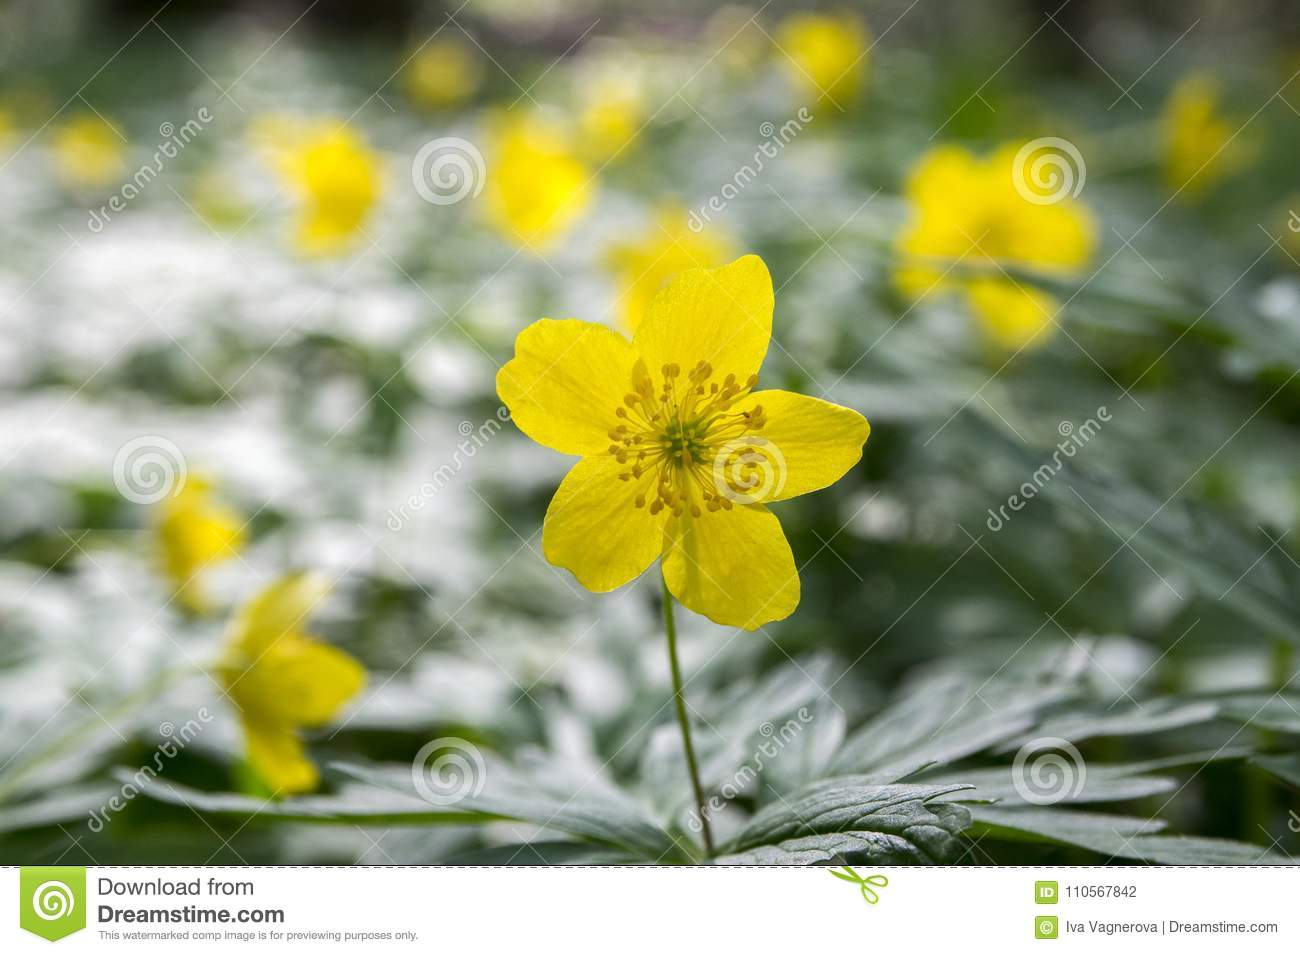 Anemone ranunculoides spring yellow flowers in bloom stock photo anemone ranunculoides spring yellow flowers in bloom spring time wild plants macro detail mightylinksfo